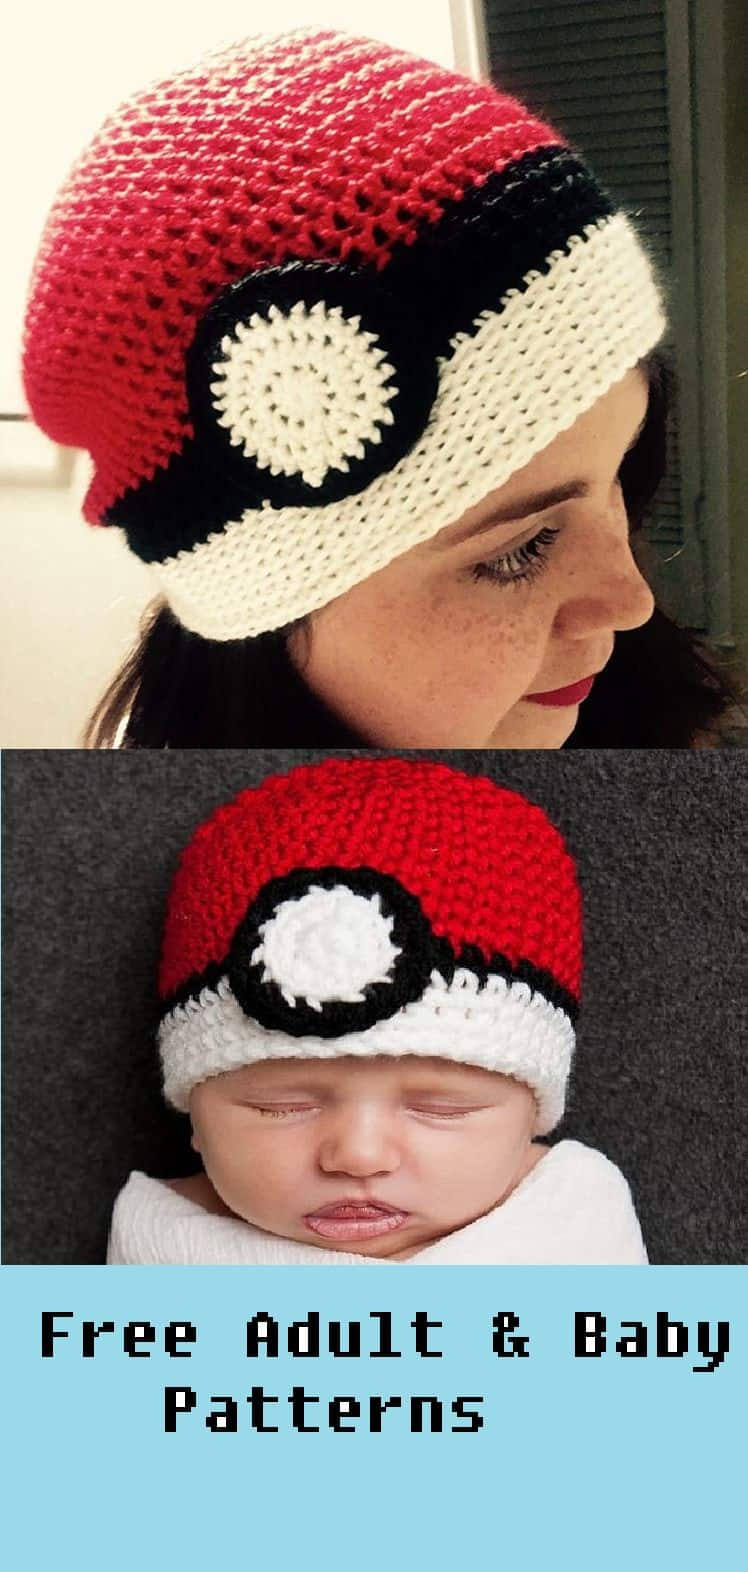 The Ultimate Crochet Pokemon Ball Beanie Hat - Adult & Baby Pattern ...